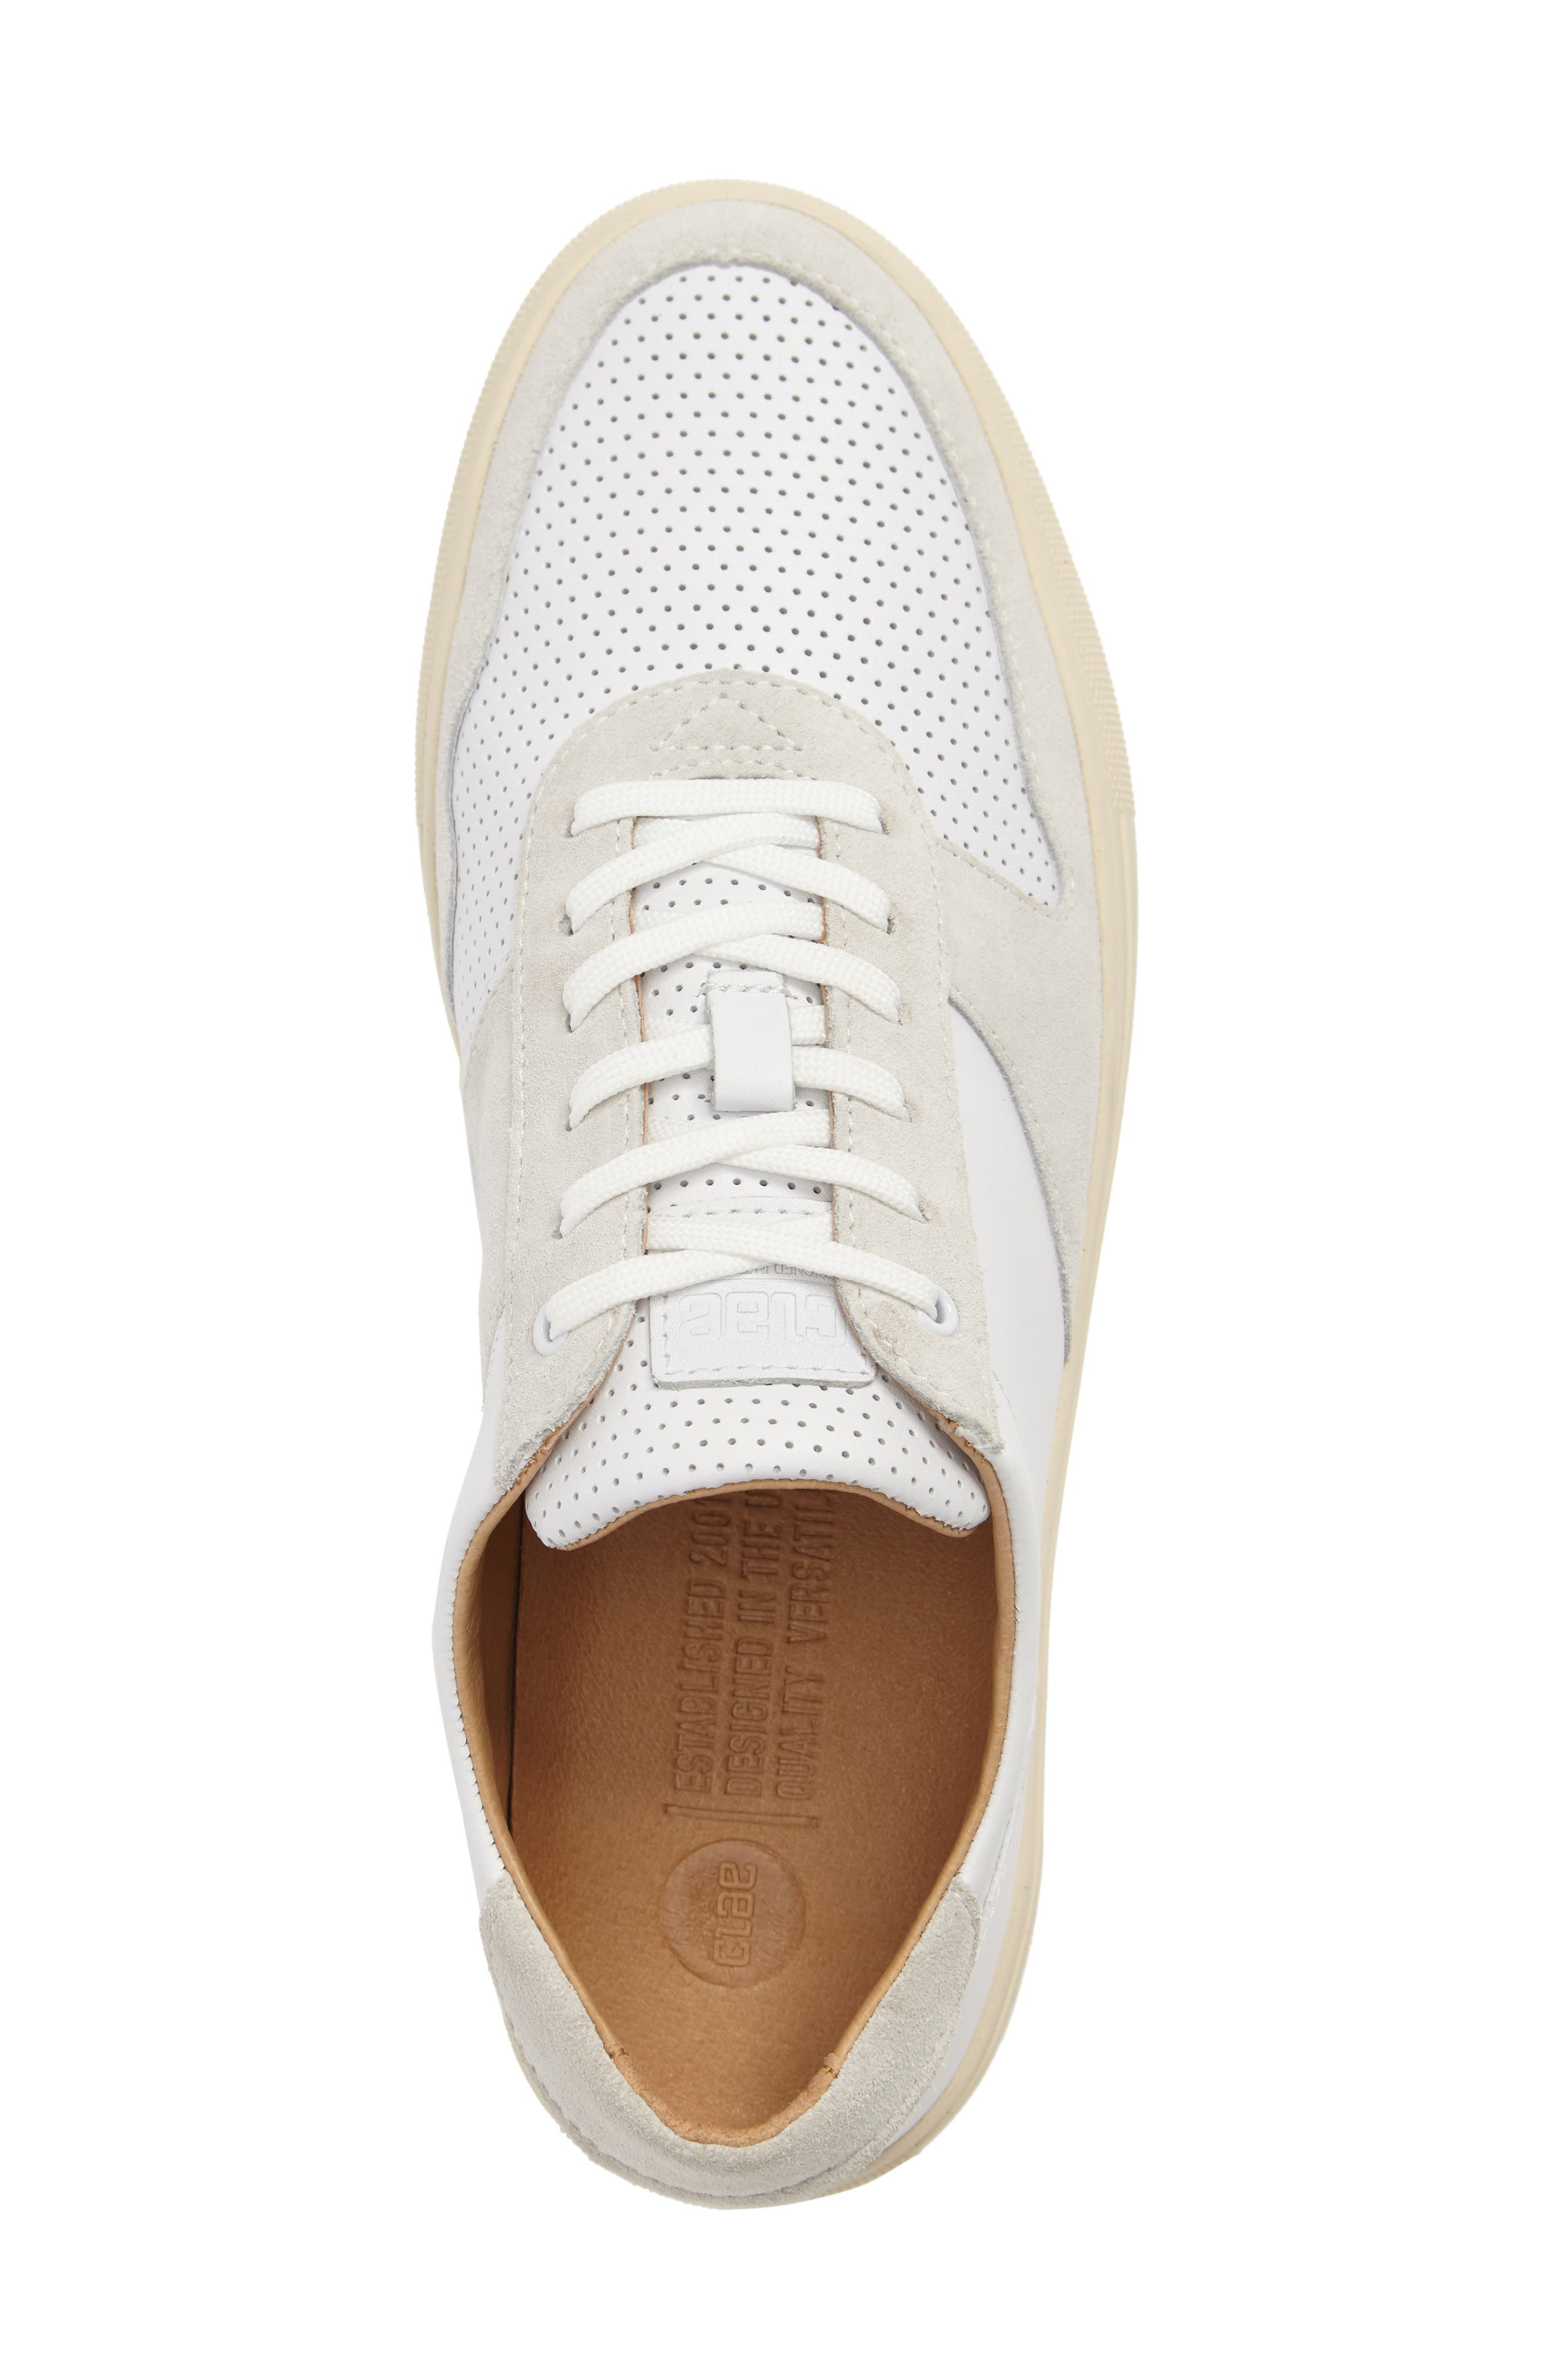 'Gregory' Sneaker,                             Alternate thumbnail 5, color,                             White Leather